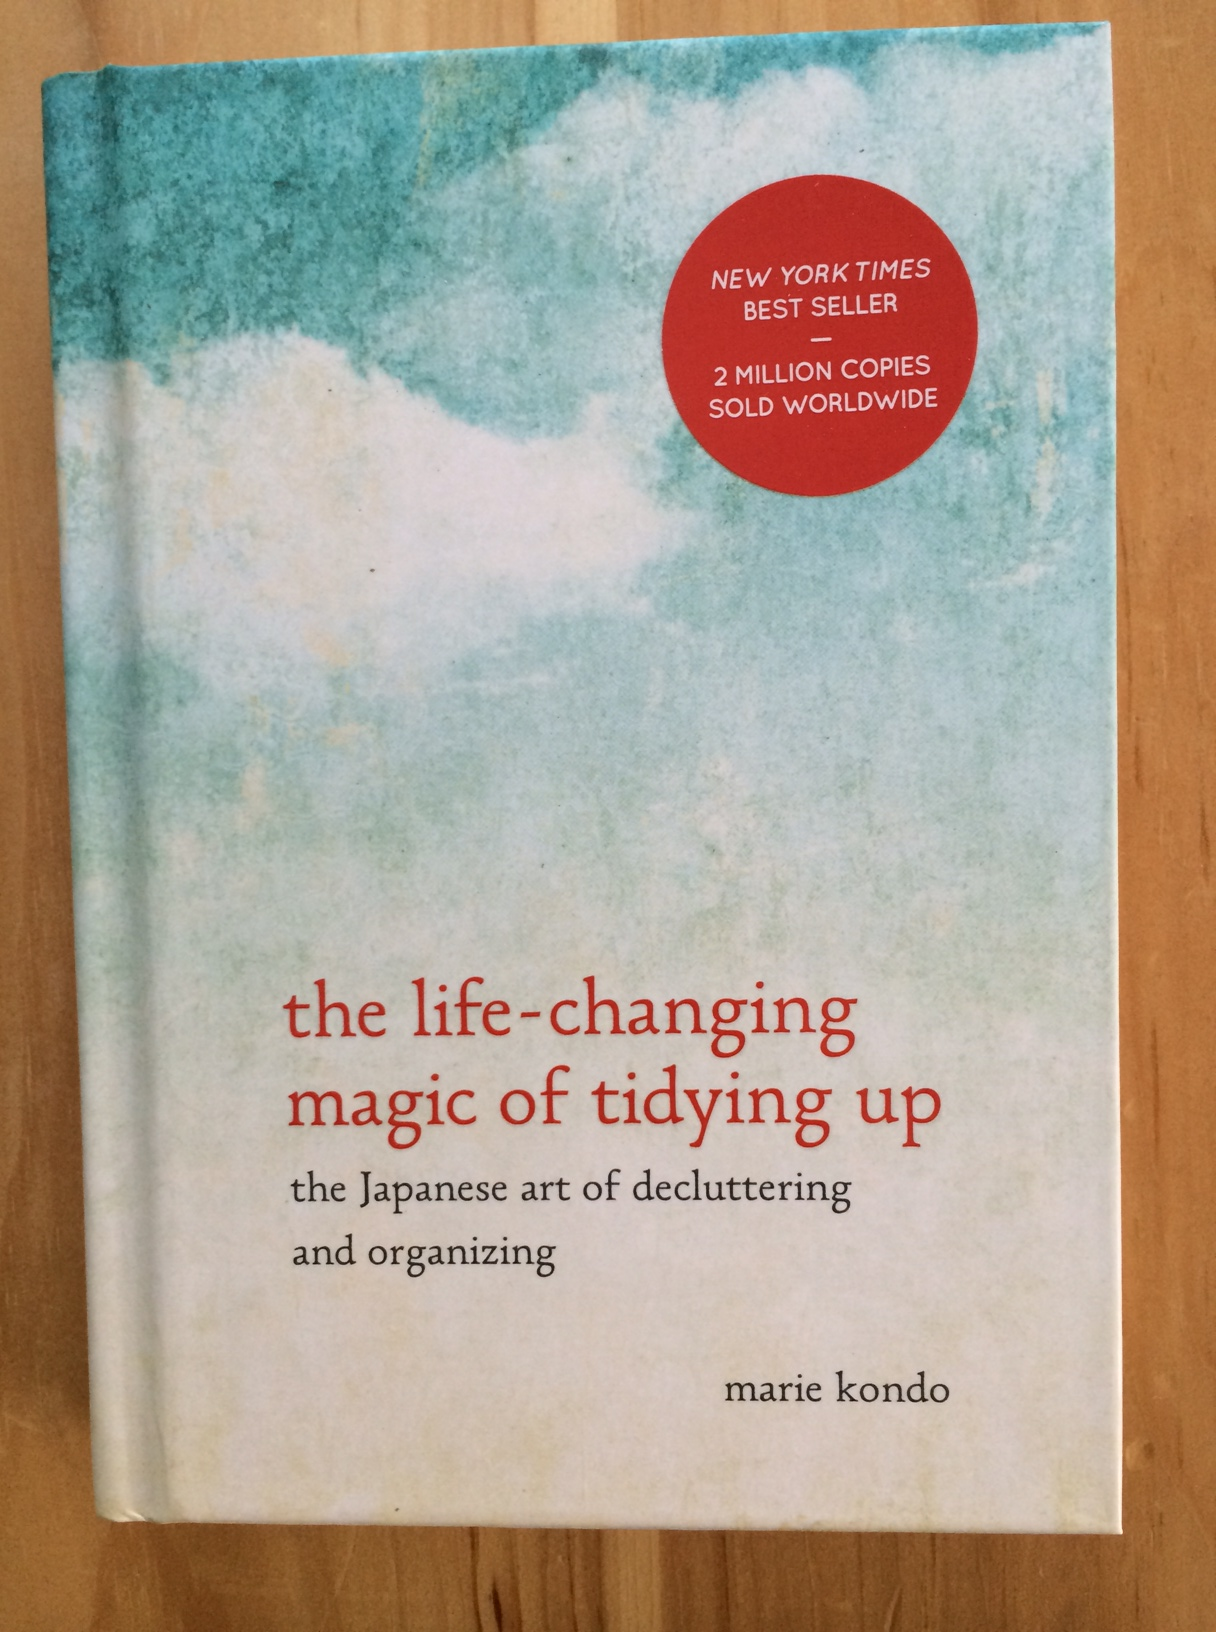 The Life Changing Magic Of Tidying Review The Life Changing Magic Of Tidying Up By Marie Kondo